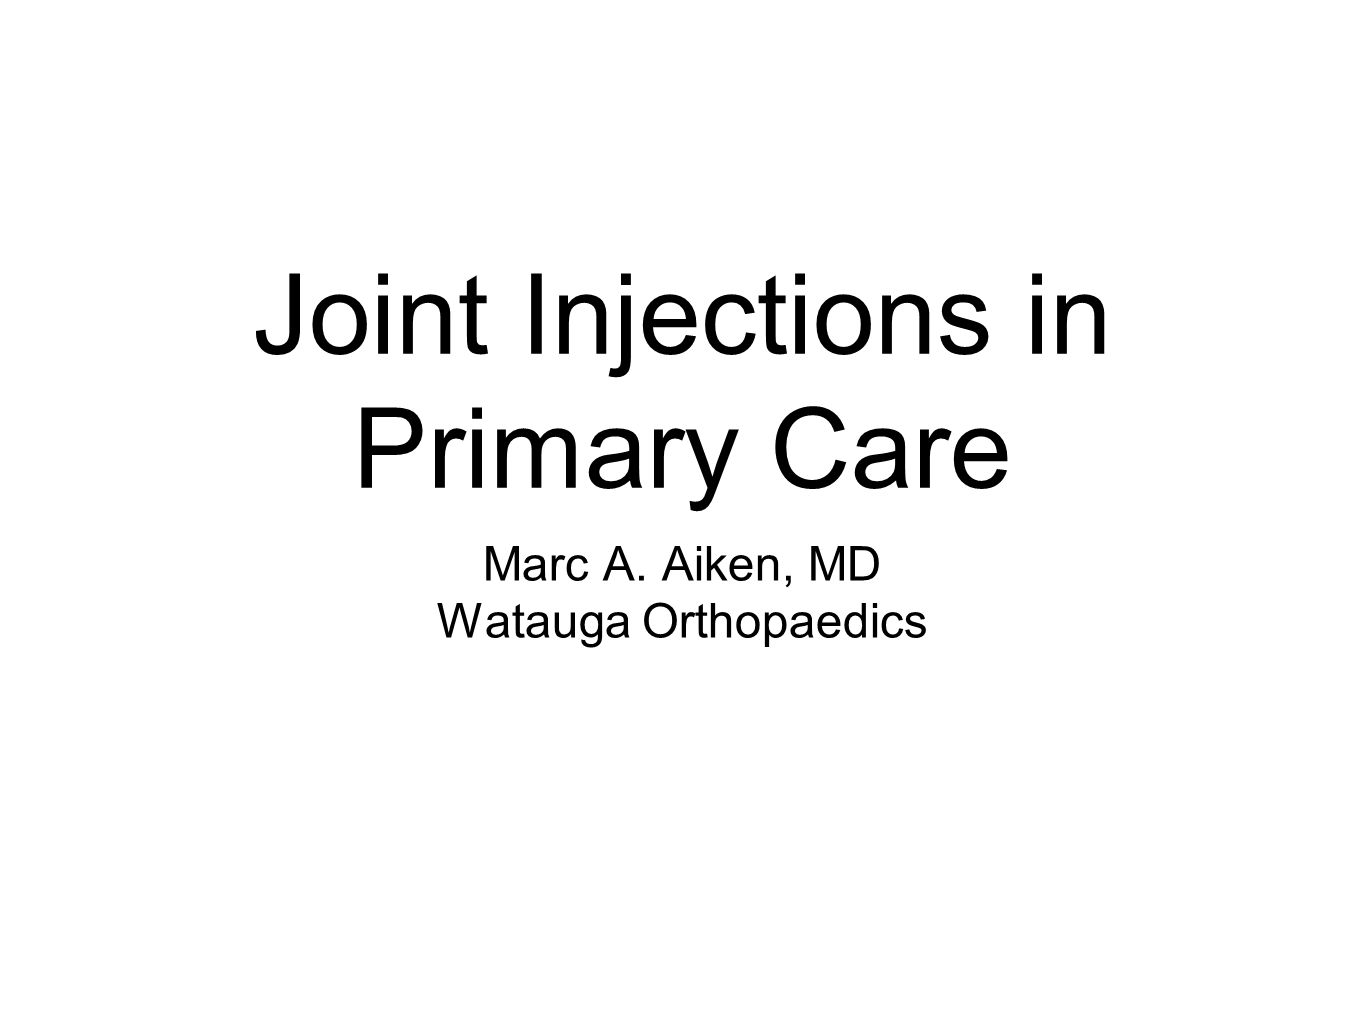 Joint Injections in Primary Care Marc A. Aiken, MD Watauga Orthopaedics